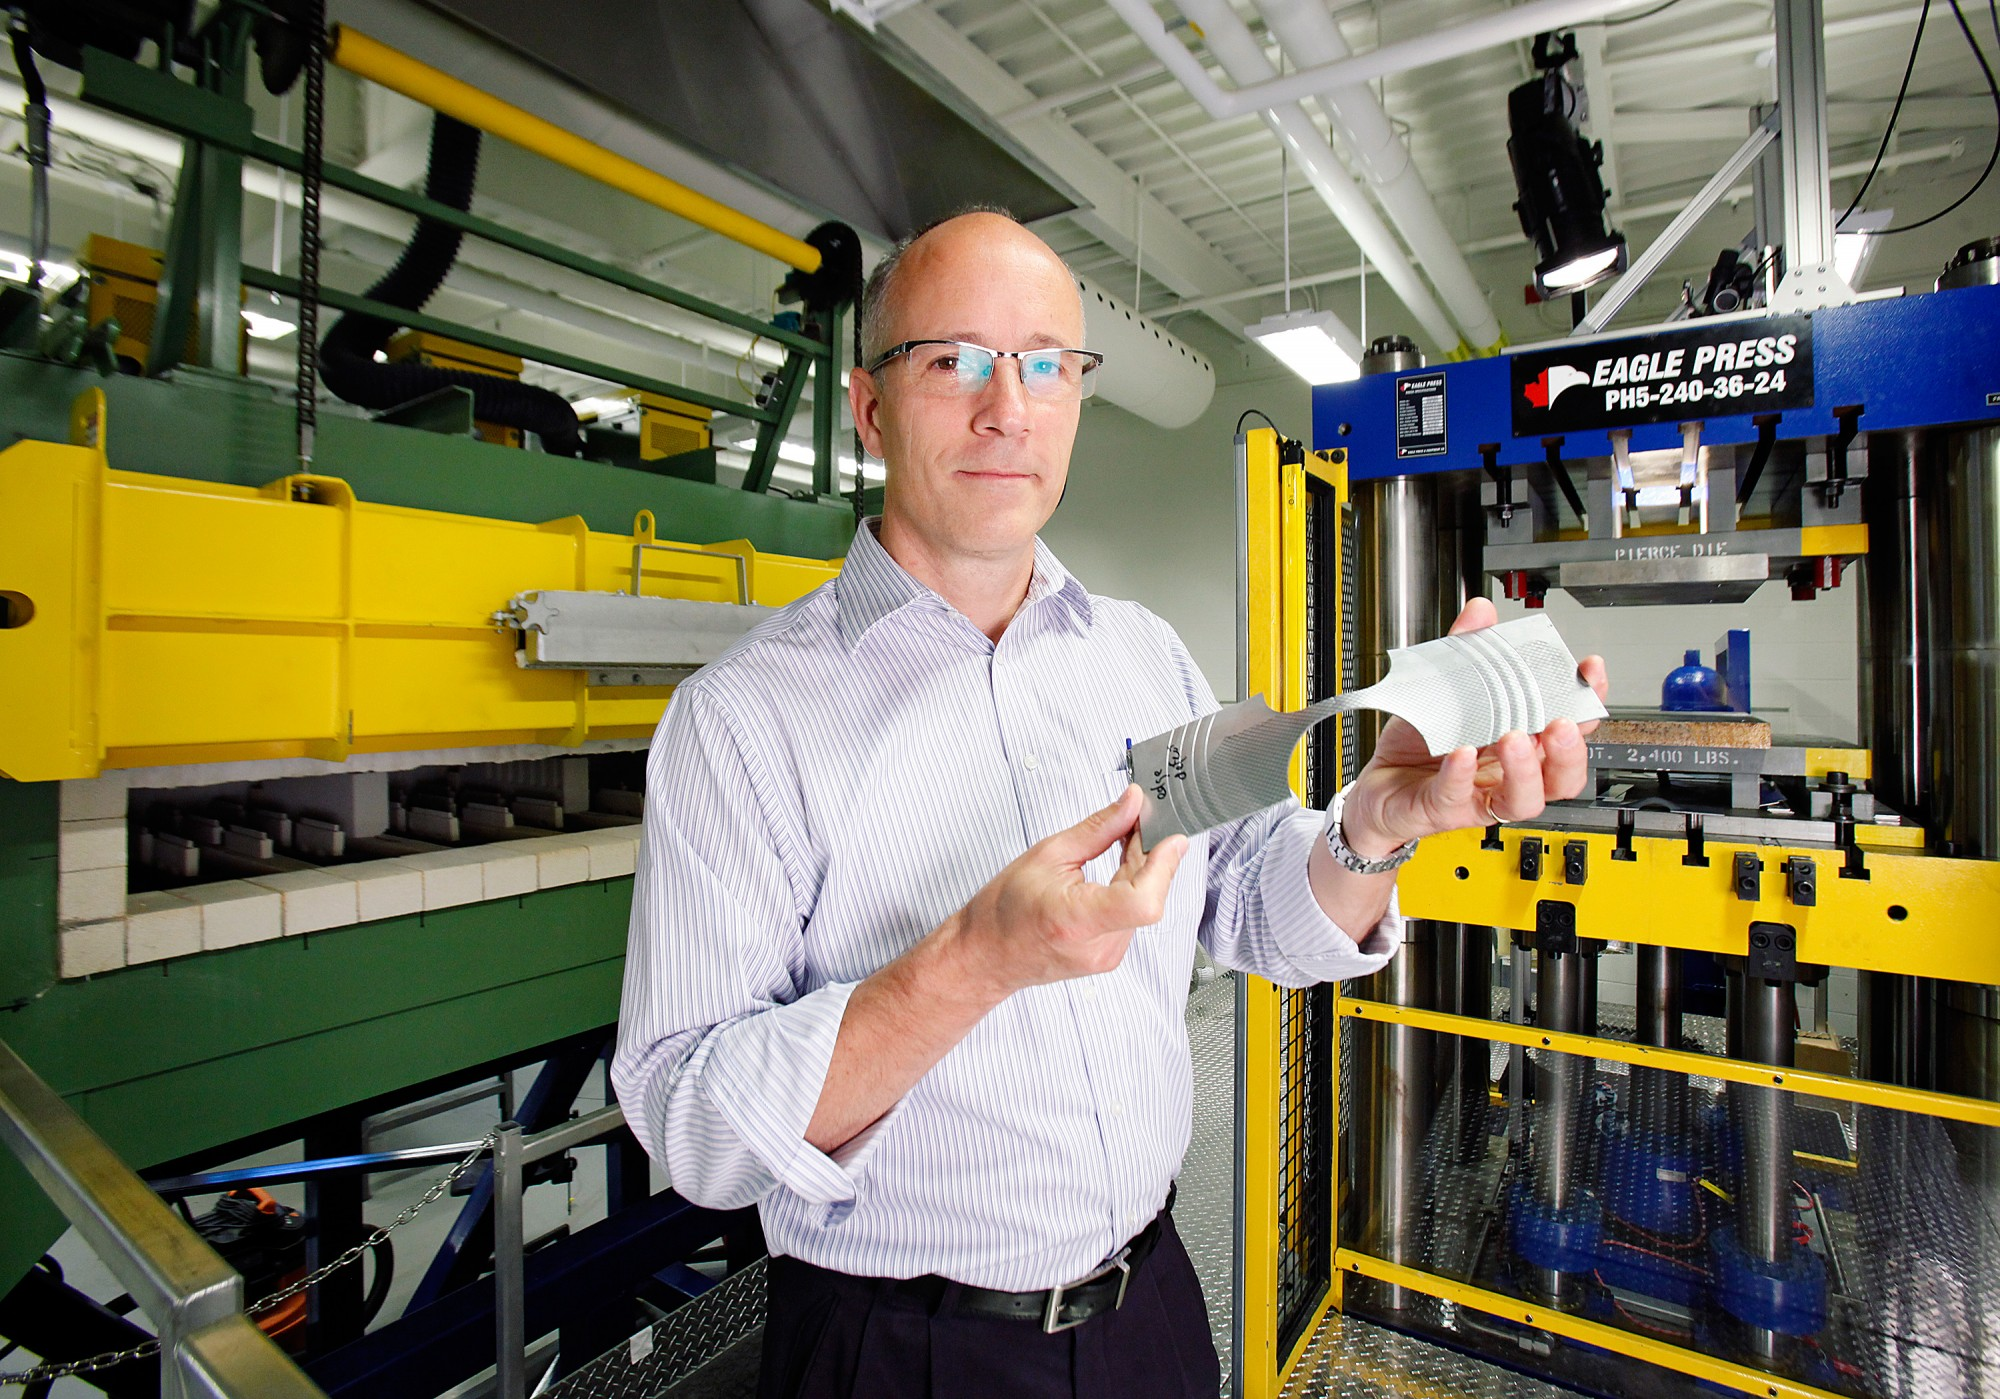 Dr. Daniel Green displays a sheet metal specimen in the Mechanical Testing Lab at the Ed Lumley Centre for Engineering Innovation. The specimen was stretch-formed in a formability test.